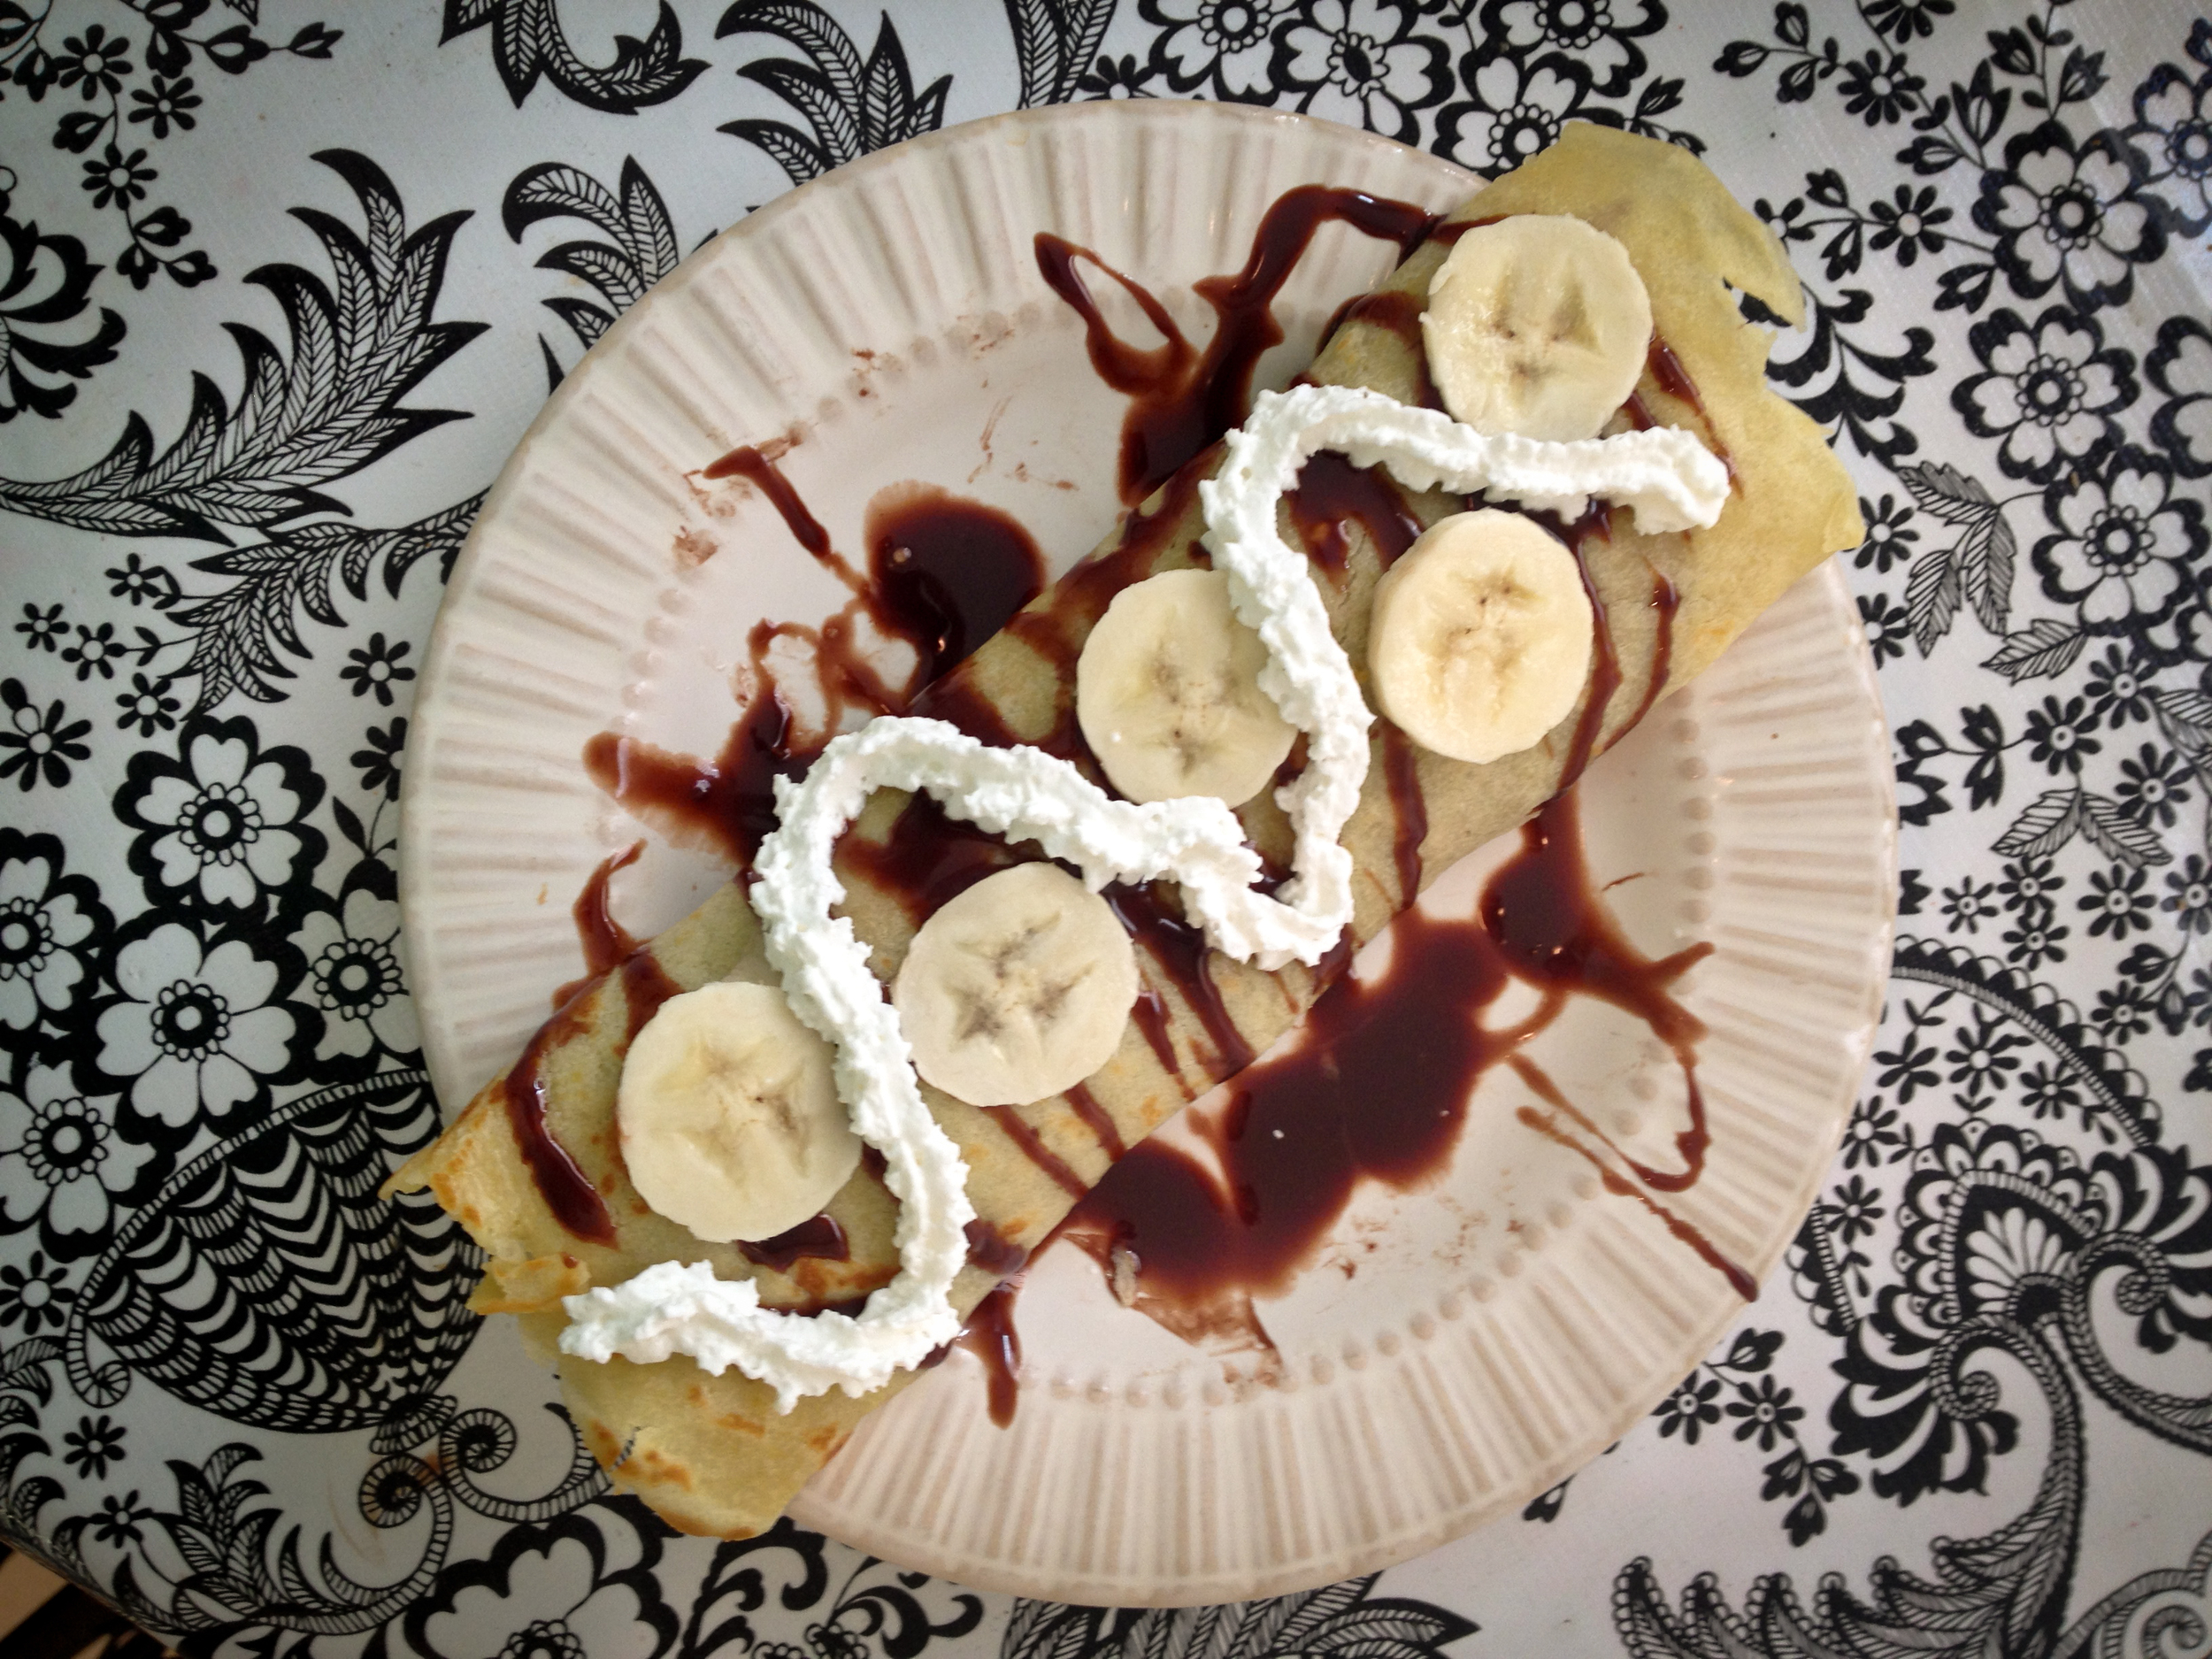 """*The """"sauce"""" on top was made by warming some Nutella with milk and stirring."""